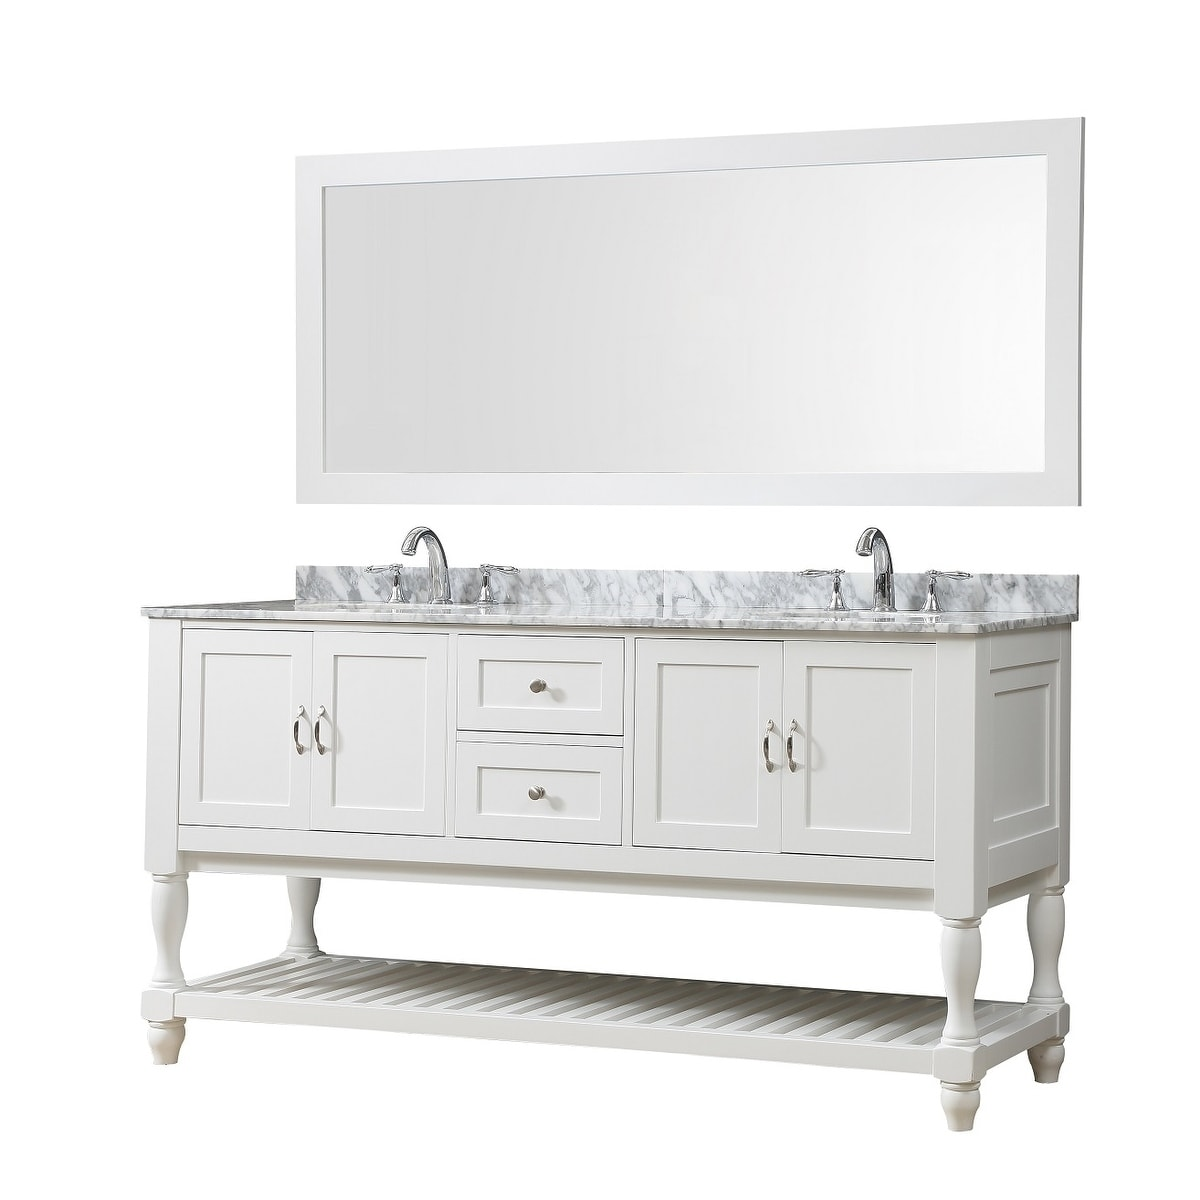 Shop For Direct Vanity Sink 70 Inch Mission Turnleg Double Vanity Sink Cabinet Get Free Delivery On Everything At Overstock Your Online Furniture Outlet Store Get 5 In Rewards With Club O 7999060